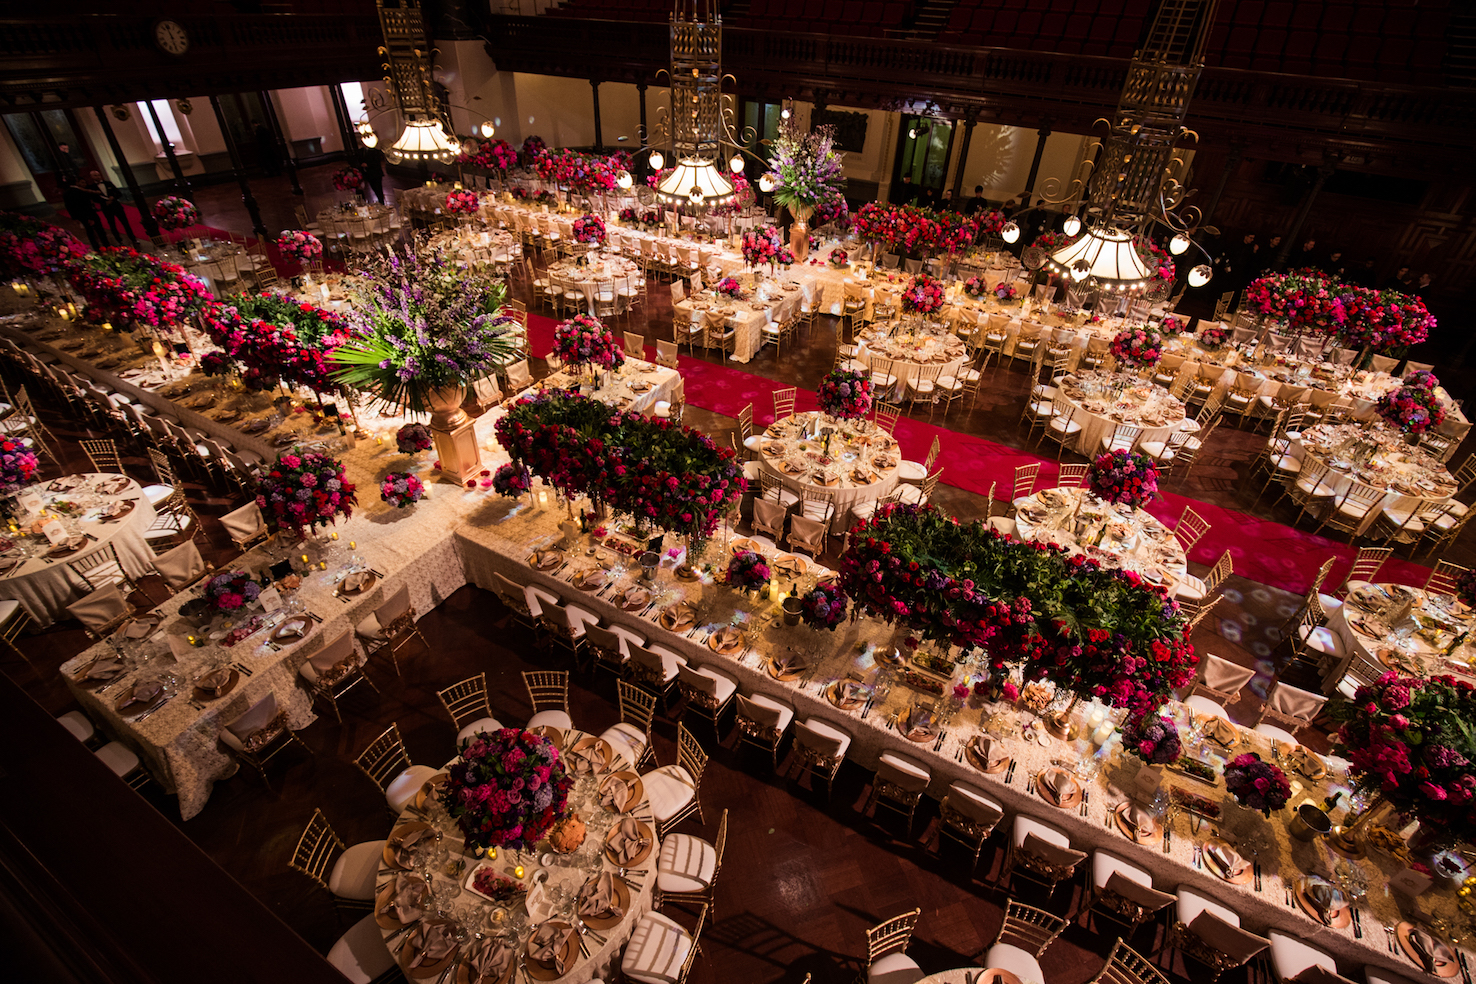 sydney_town_hall_regal_royal_wedding_red_gold_luxury_linen.jpg